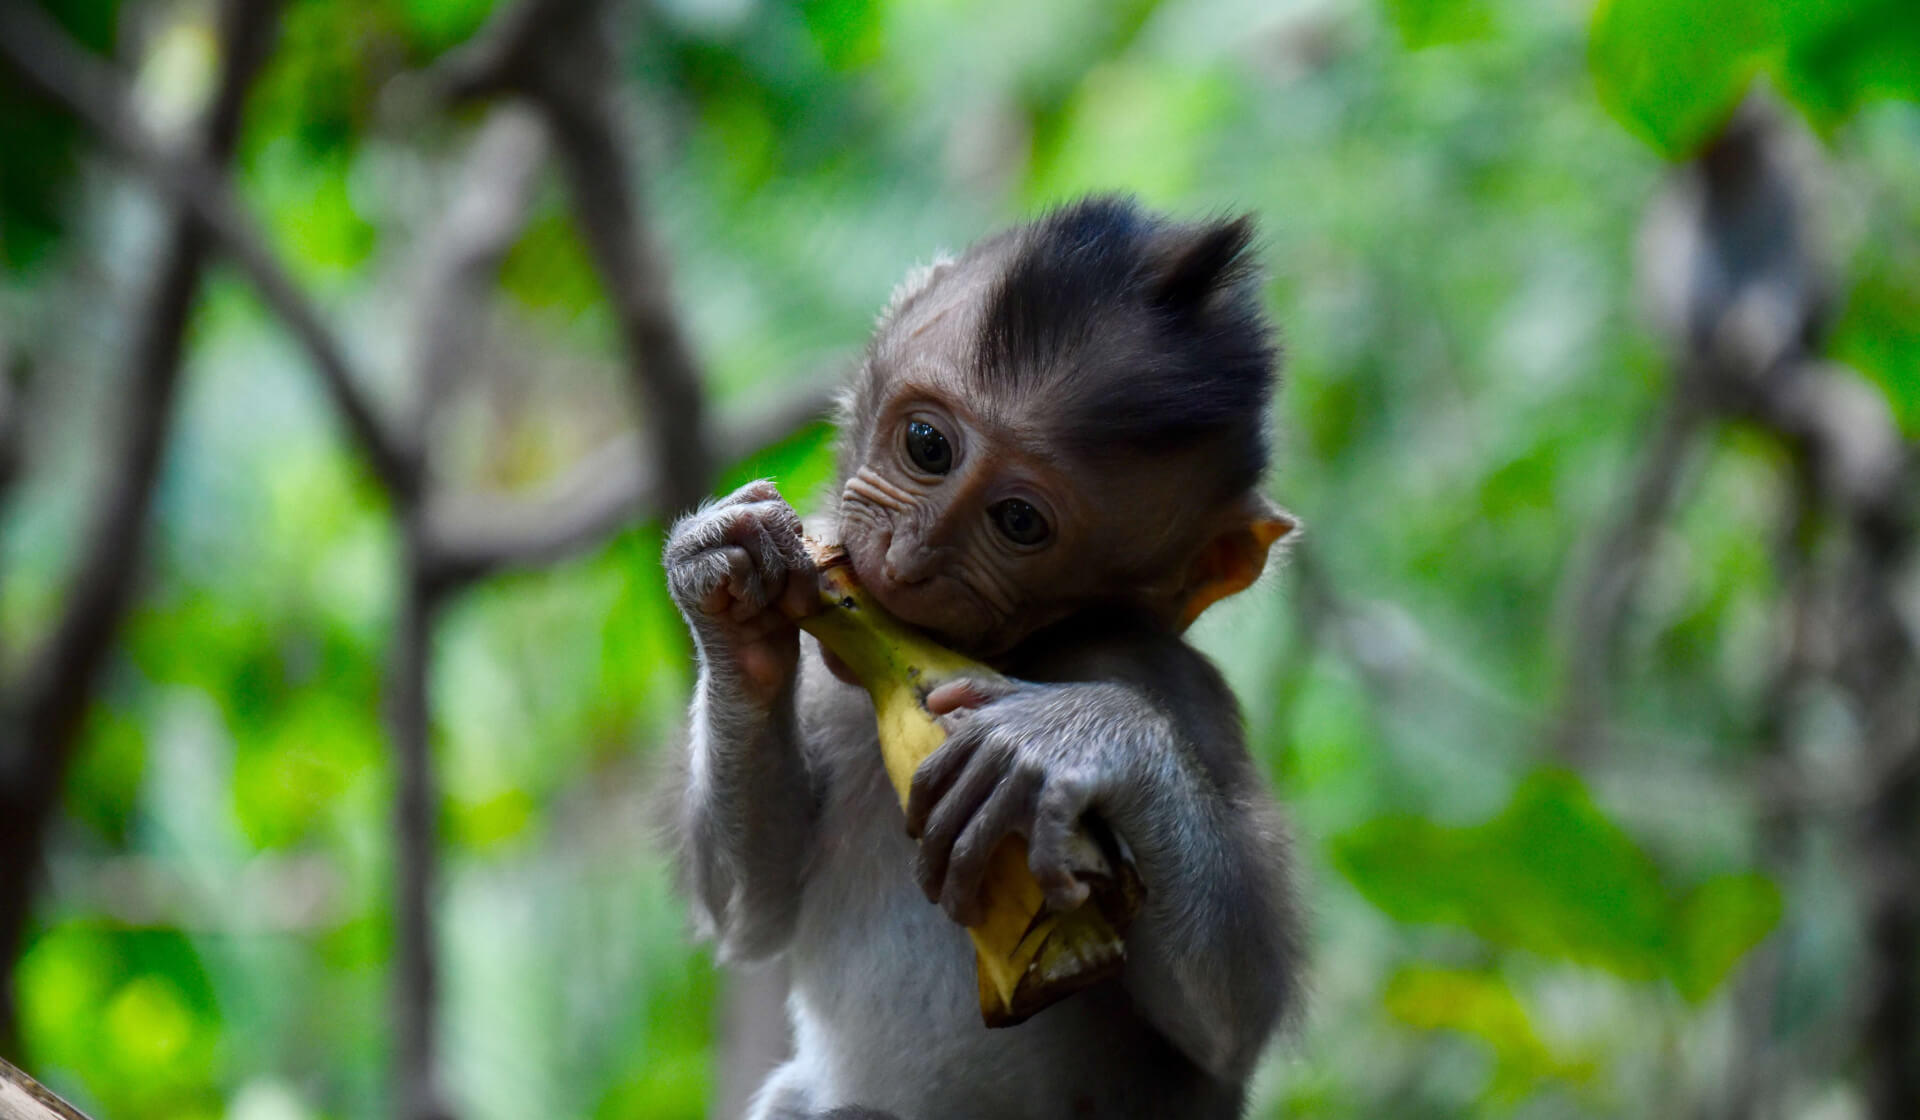 Baby monkey eating a banana